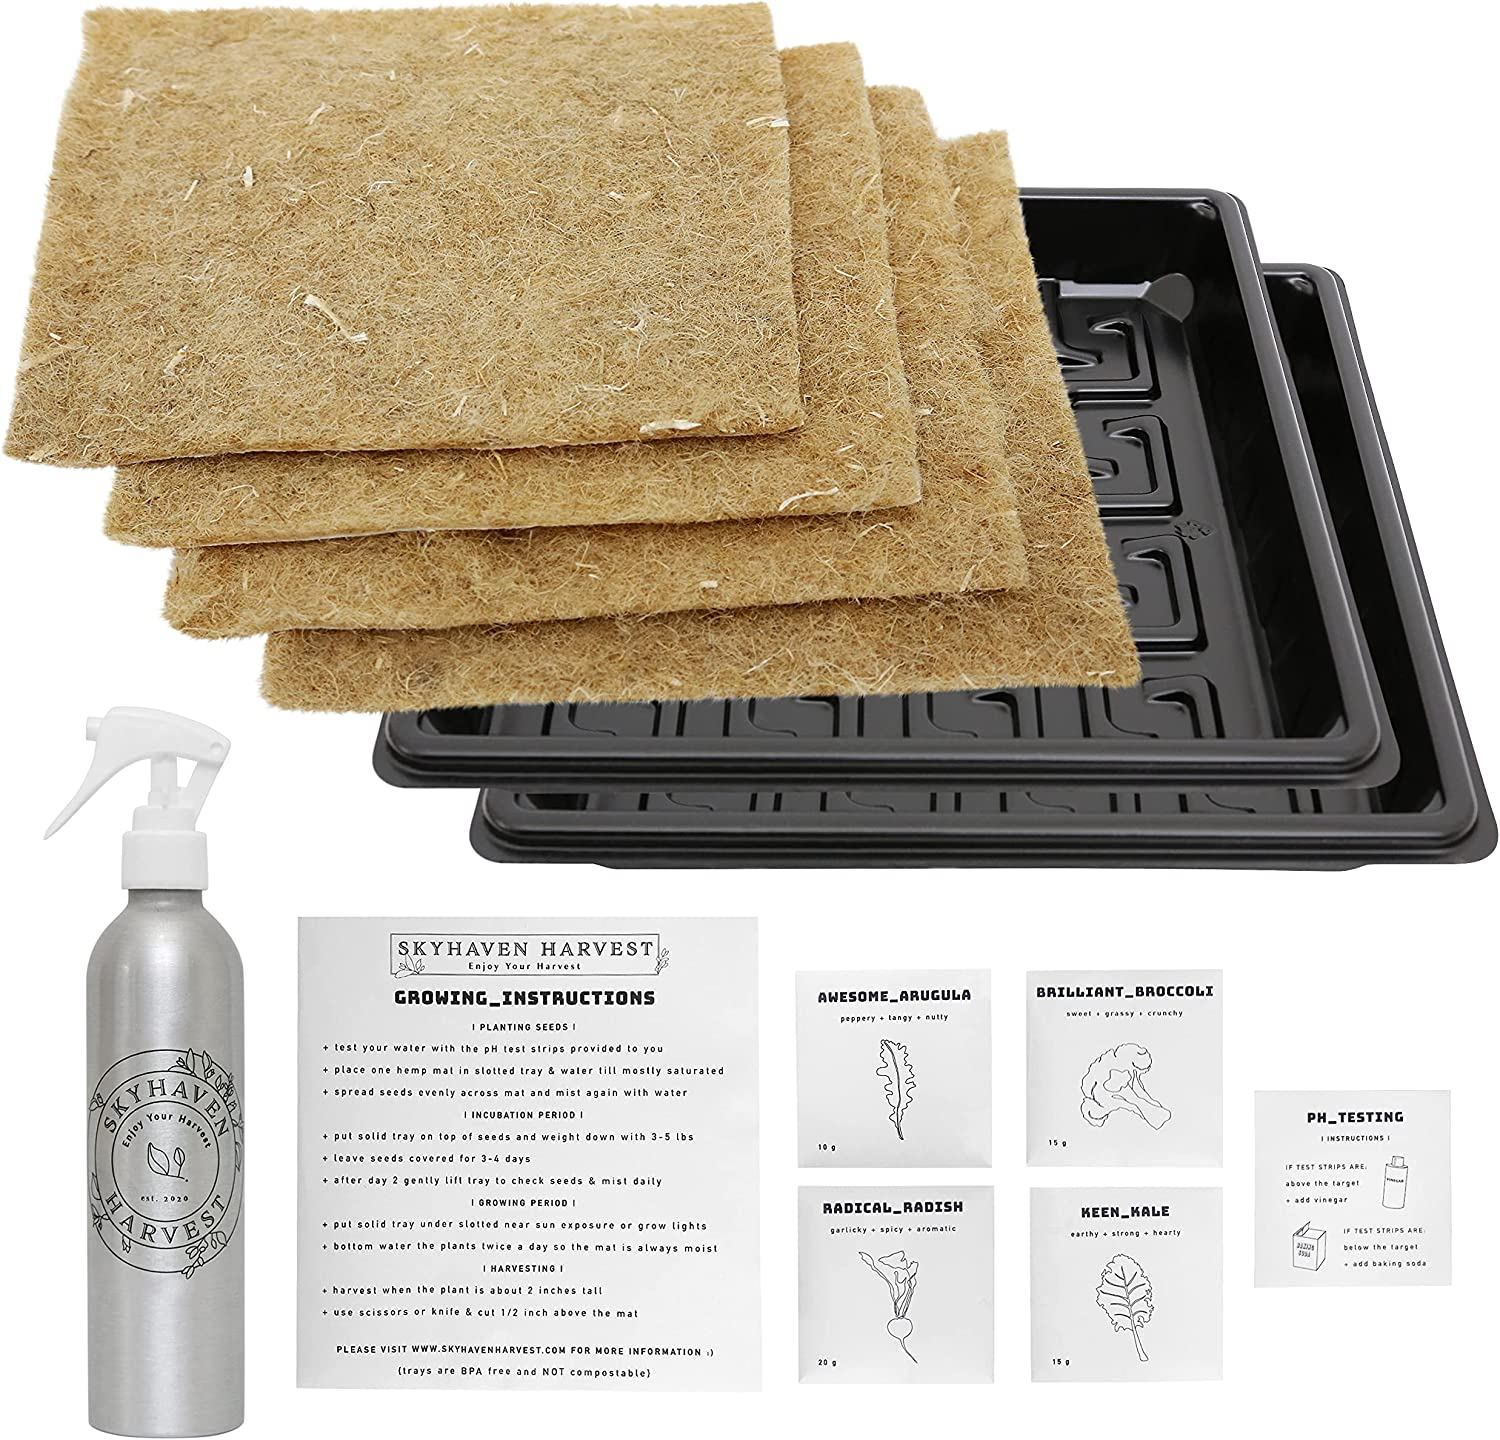 Mini Hydroponic Microgreens Grow Kit - Give The Healthy Gift of a Garden. 4 of Each: Grow mats, Seed Packs, pH Test Strips Included for 4 harvests. Reusable Tray Pairs and Spray Bottle Included